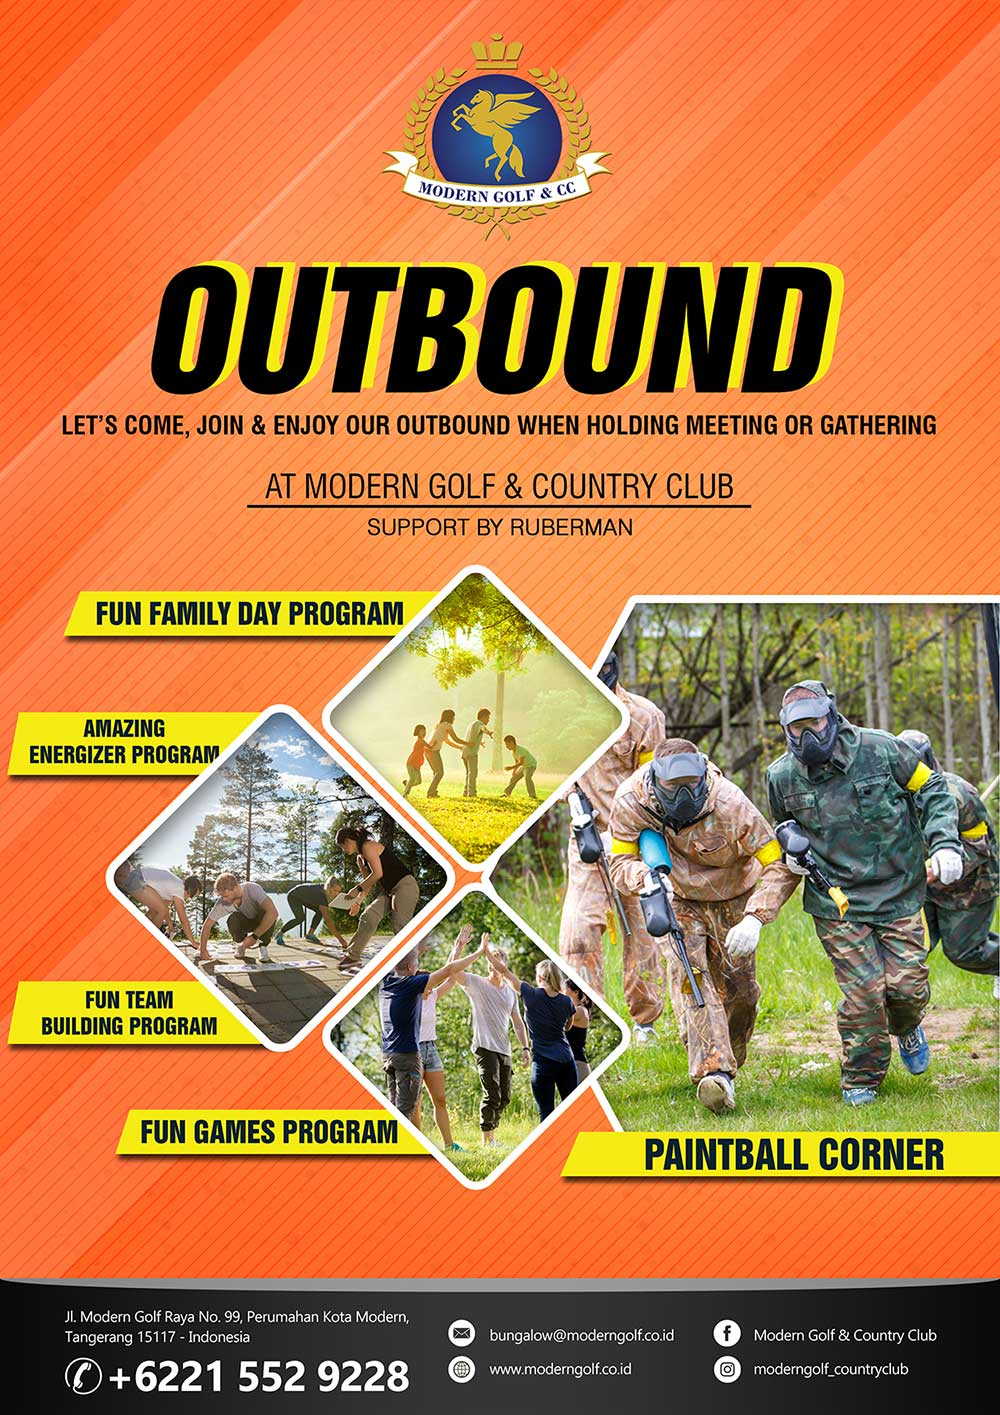 Outbond 2019